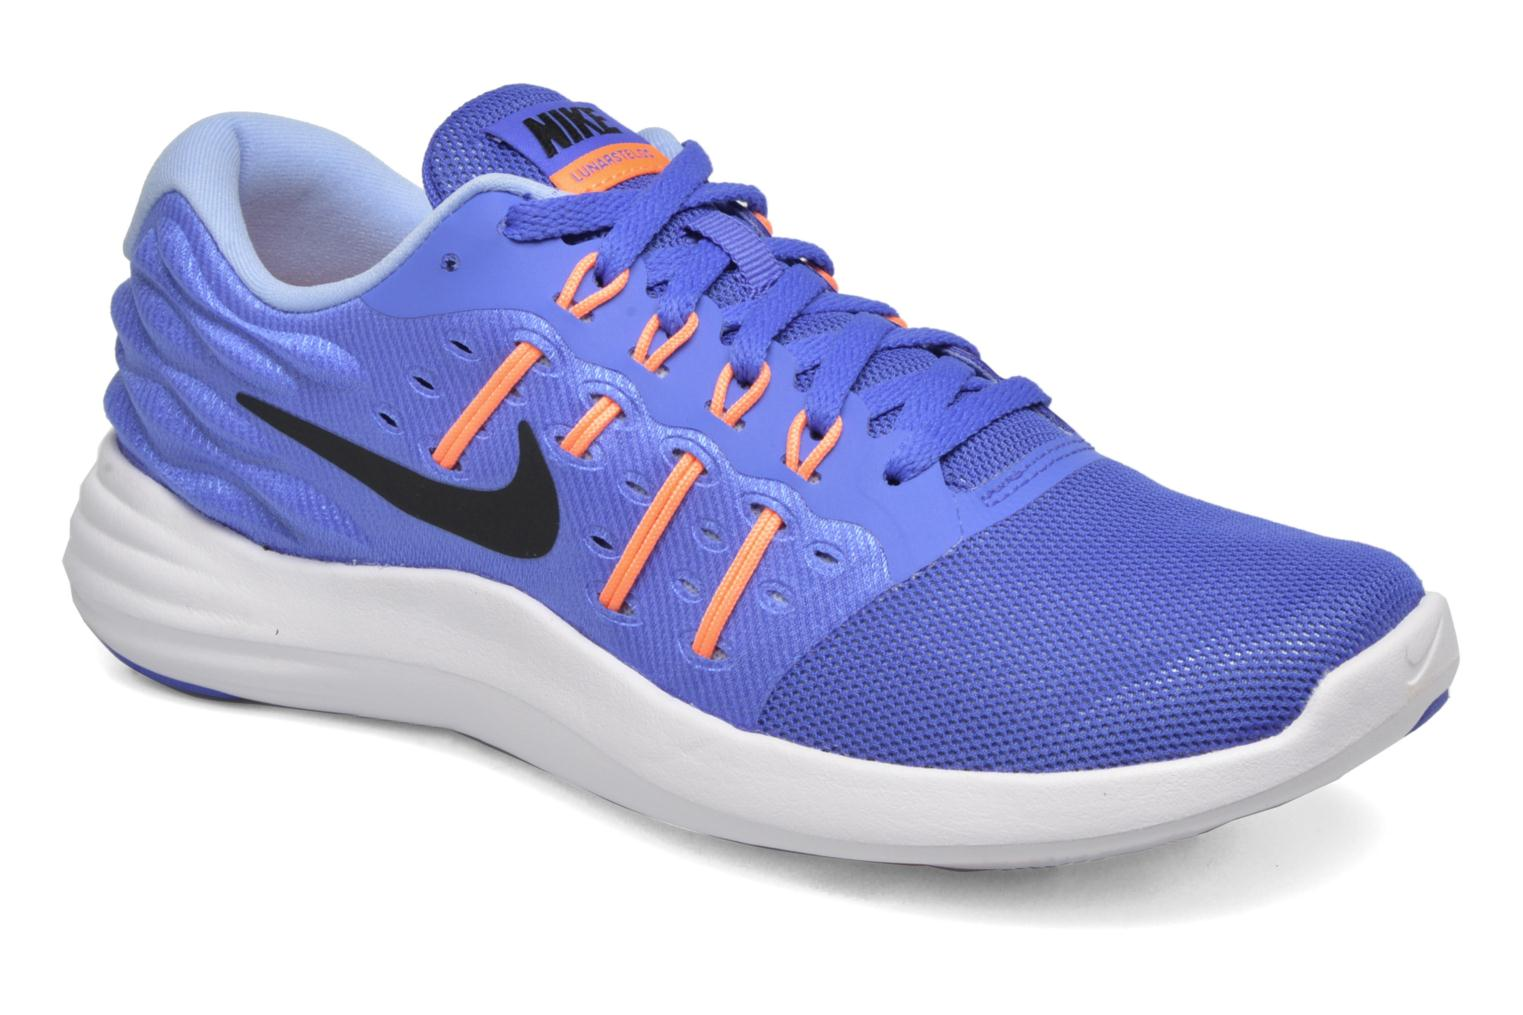 Wmns Nike Lunarstelos Medium Blue/Black-Sunset Glow-Aluminum